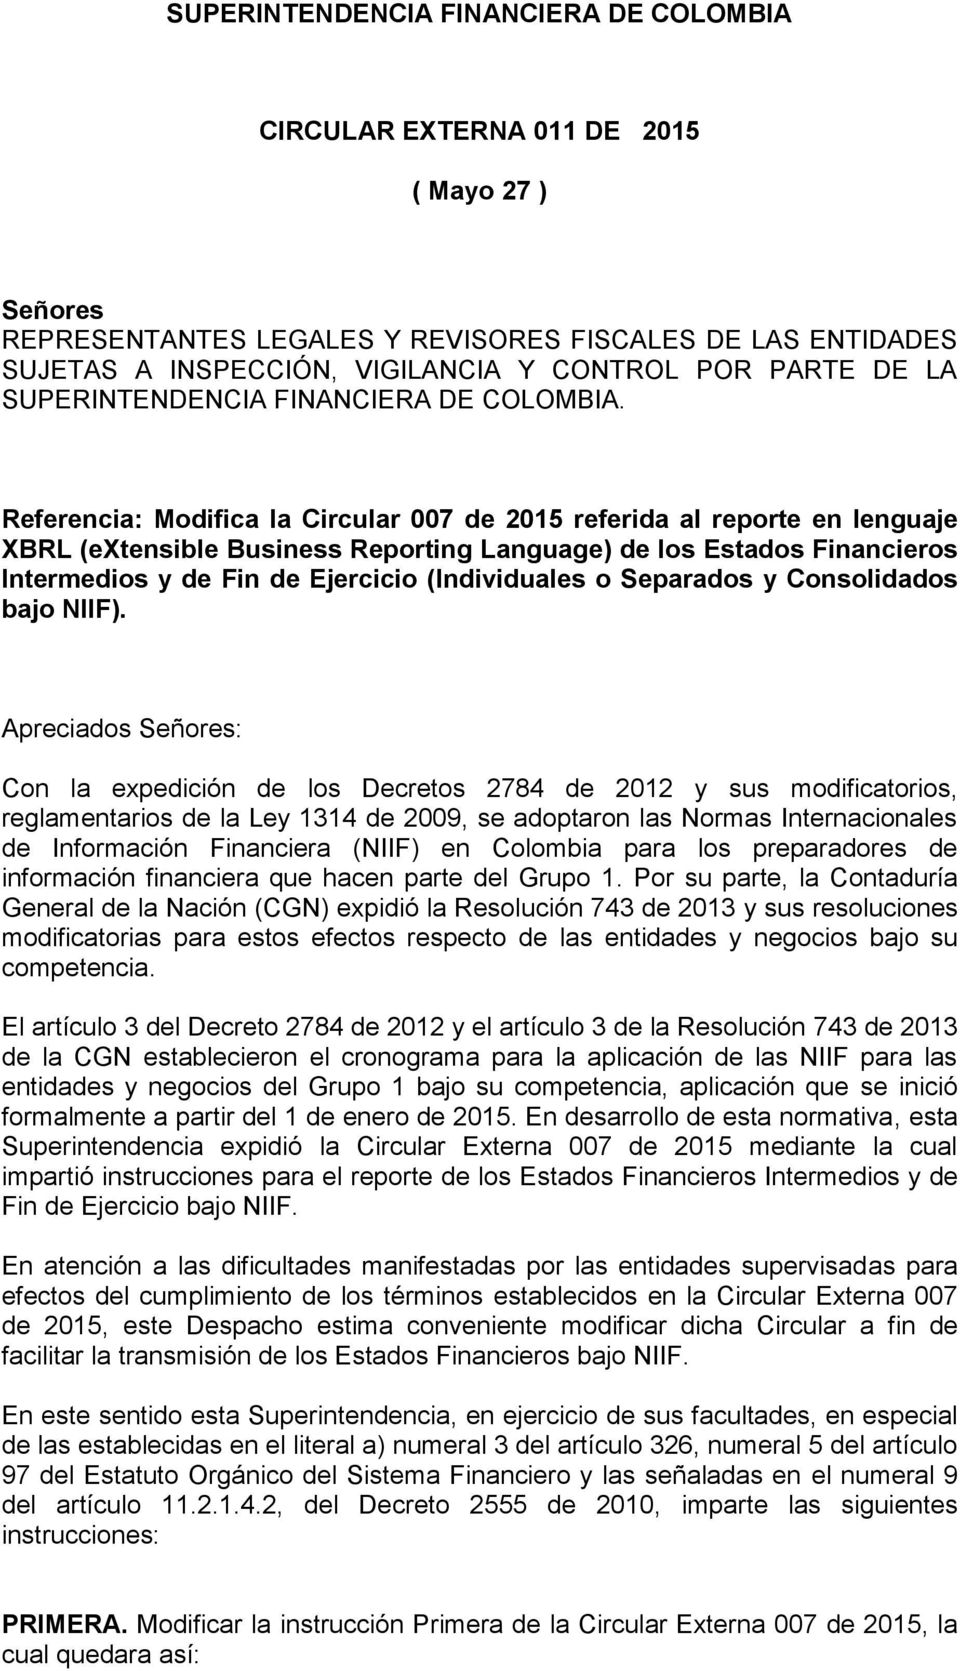 Referencia: Modifica la Circular 007 de 2015 referida al reporte en lenguaje XBRL (extensible Business Reporting Language) de los Estados Financieros Intermedios y de Fin de Ejercicio (Individuales o